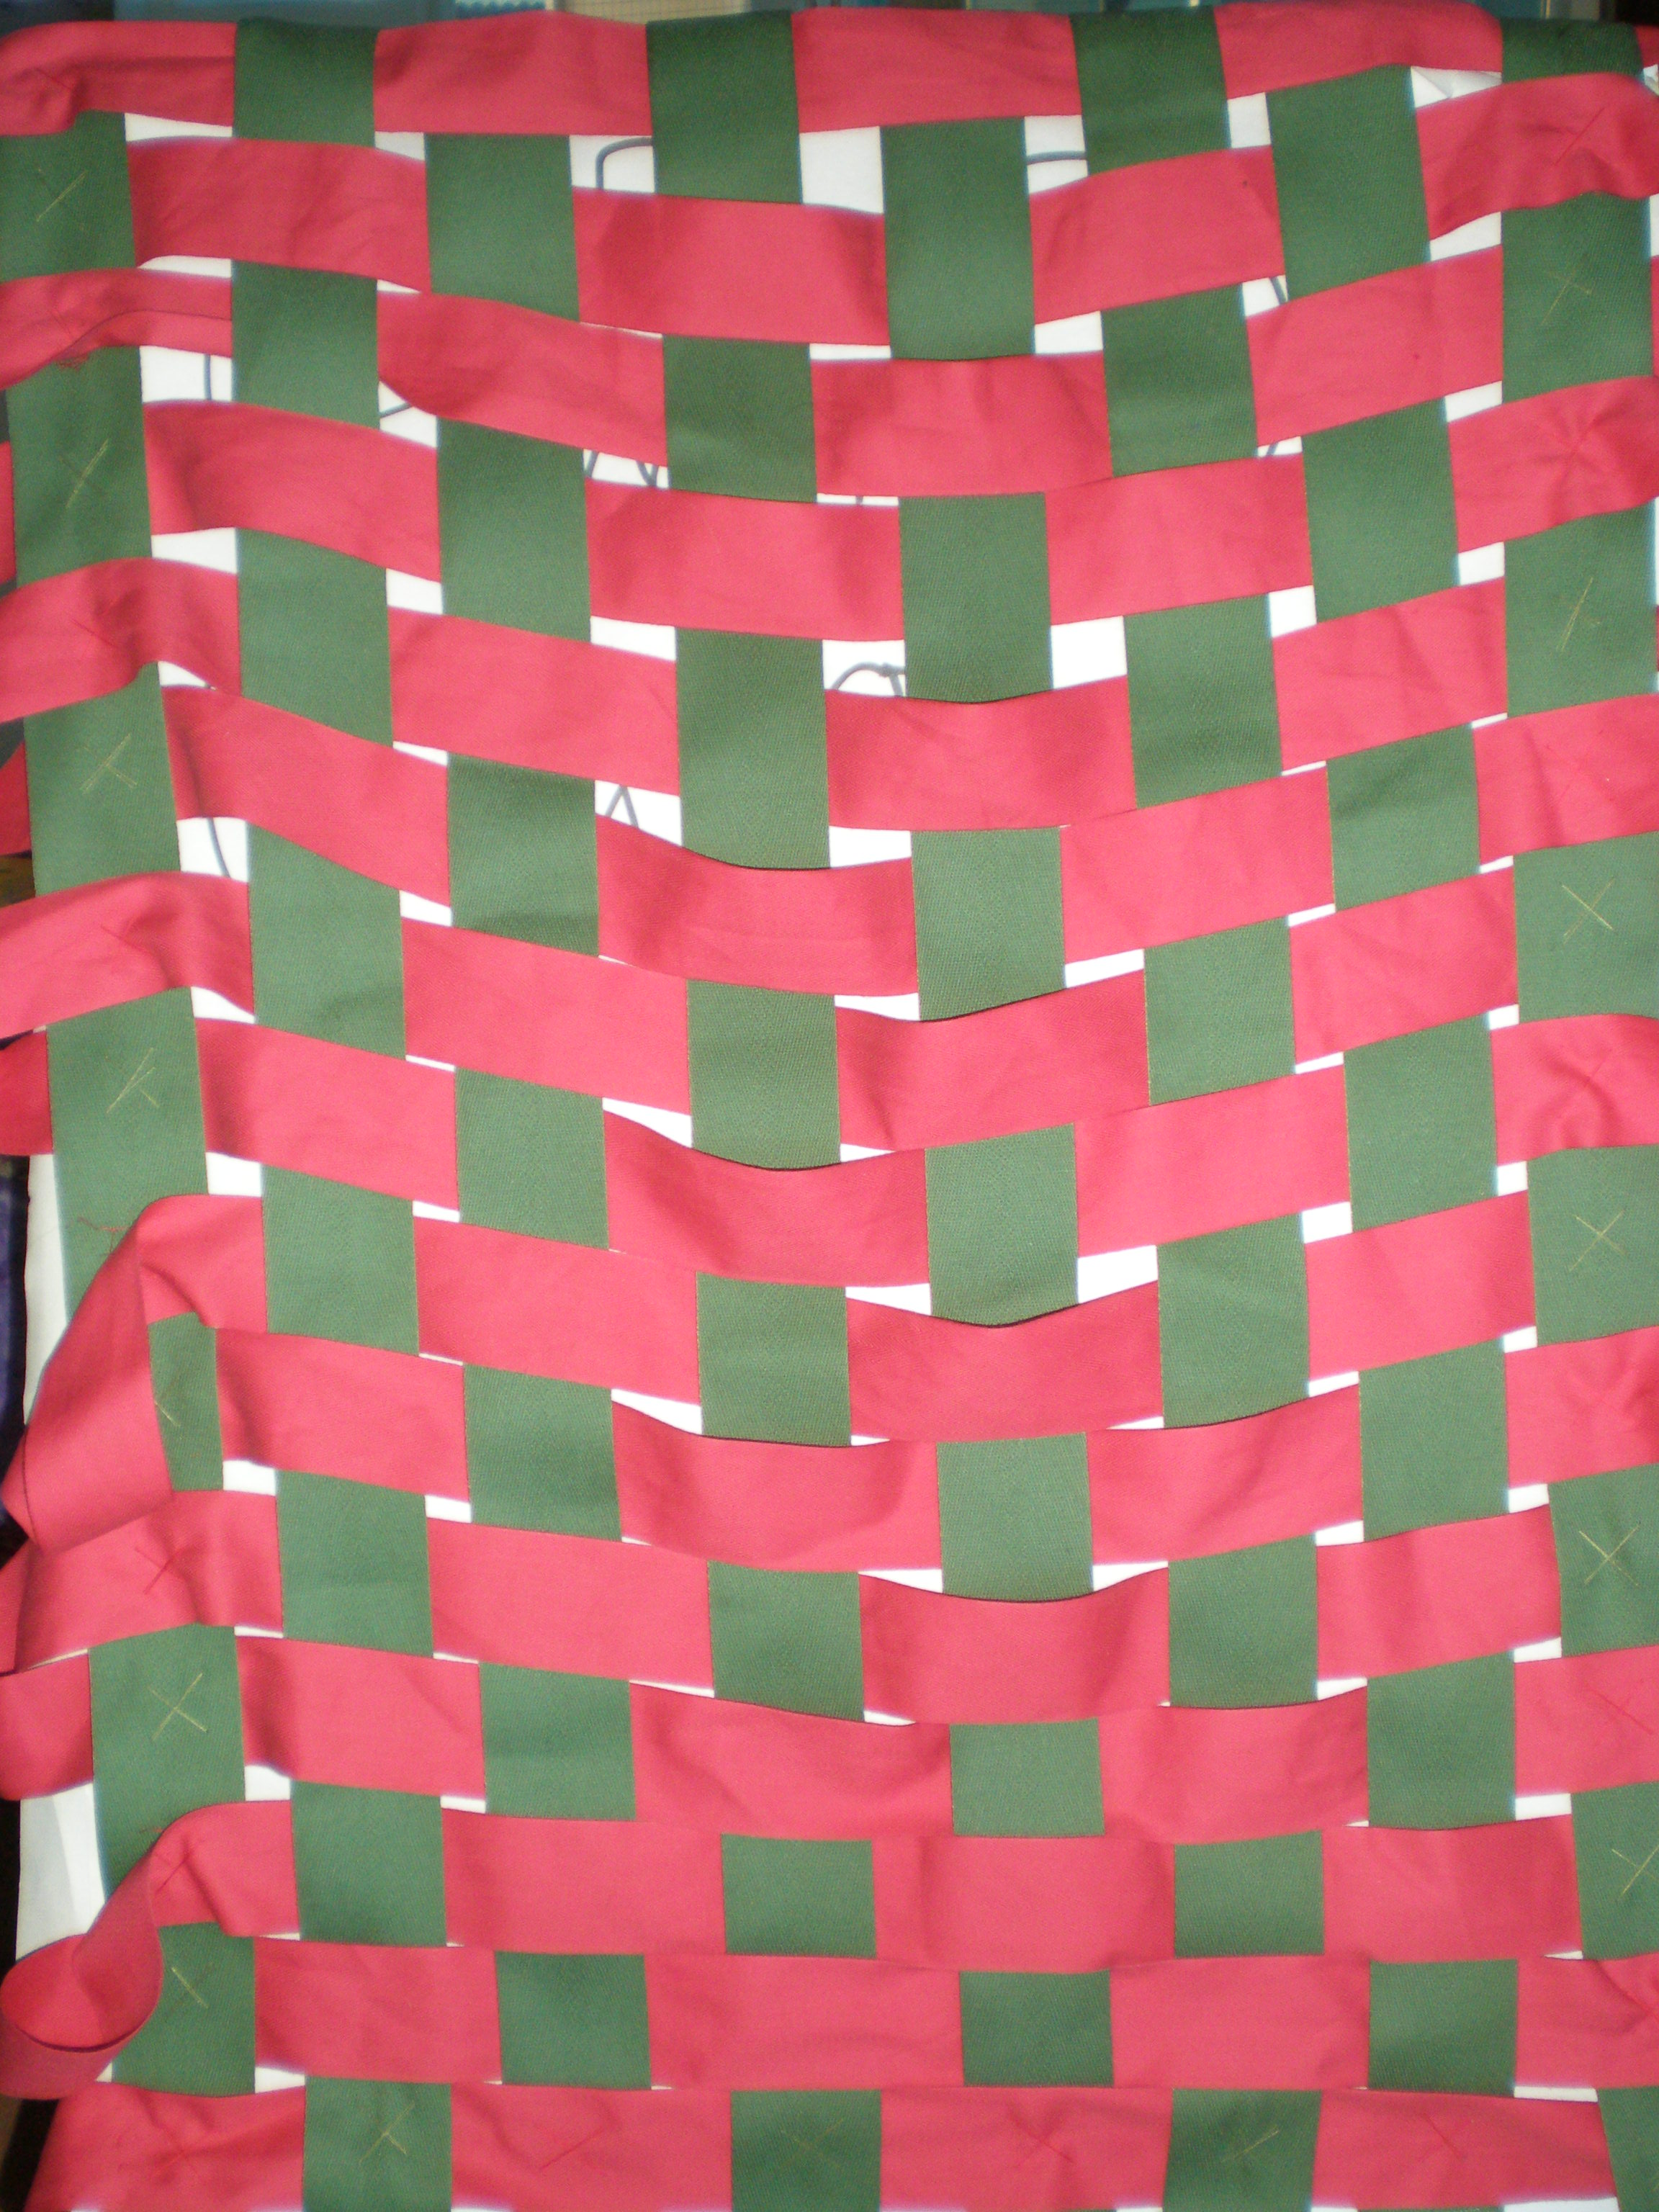 Weaving made with wide tape strips